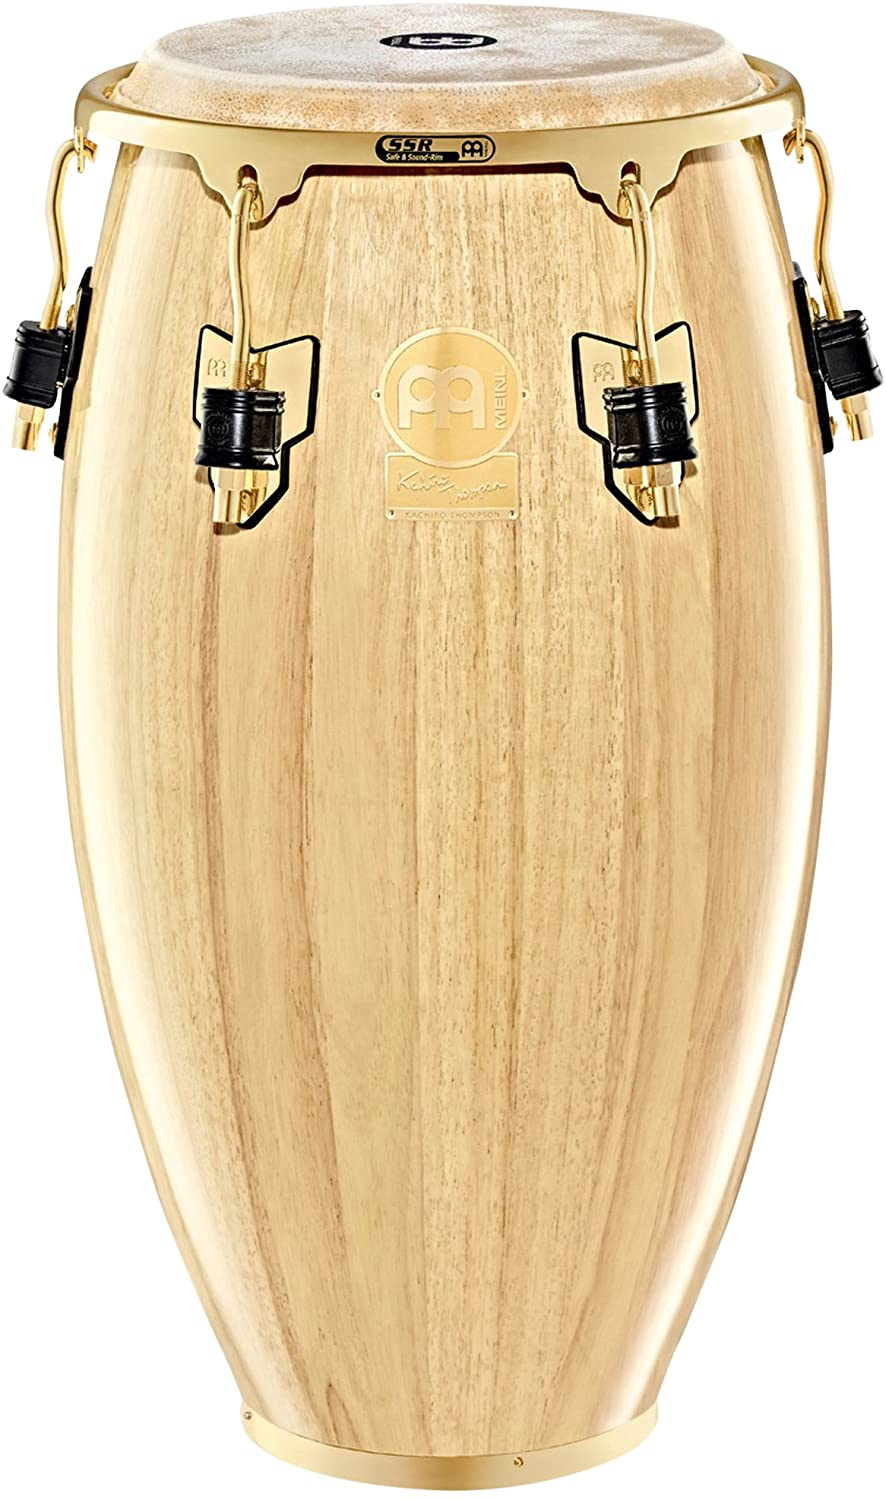 Meinl Percussion WKT1134NT Artist Series Kachiro Thompson Signature 11.75-Inch Conga, Natural